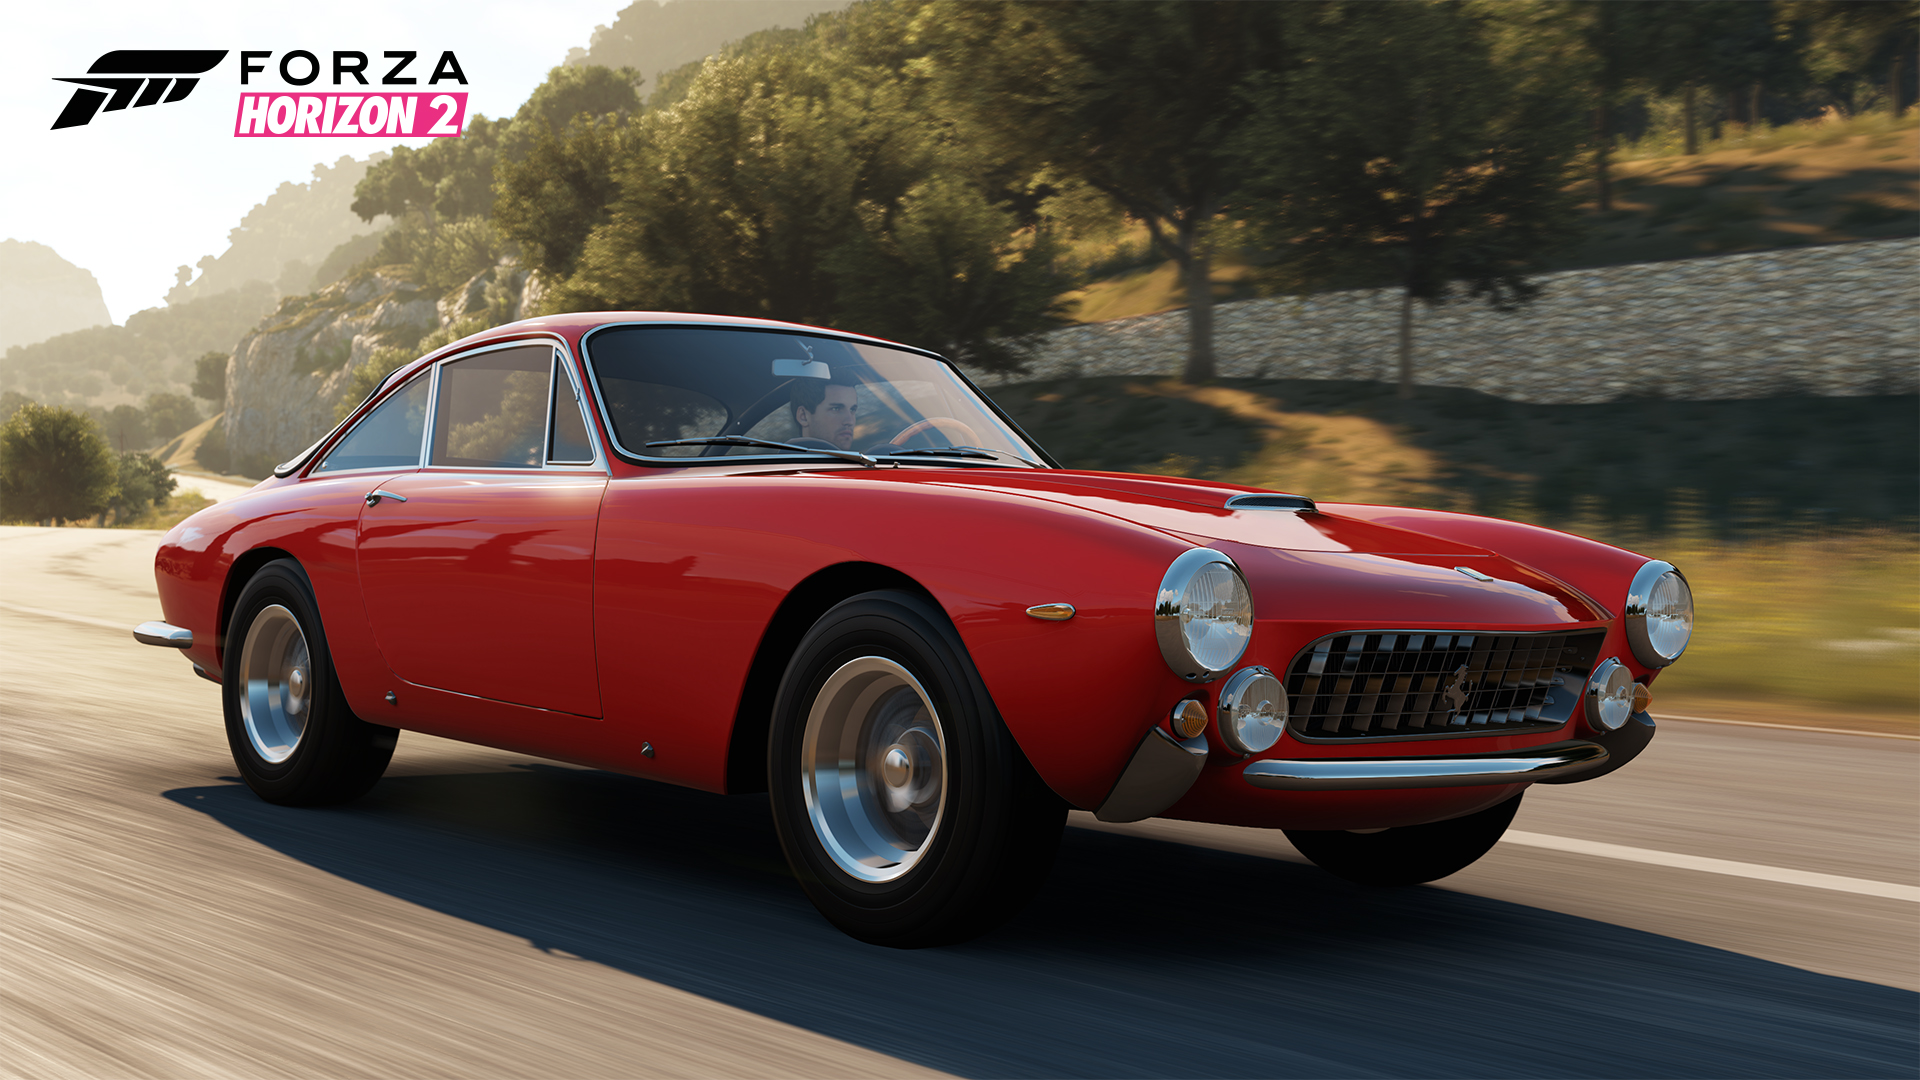 Some Of The Cars In Forza Horizon 2 Are Downright Drool Worthy